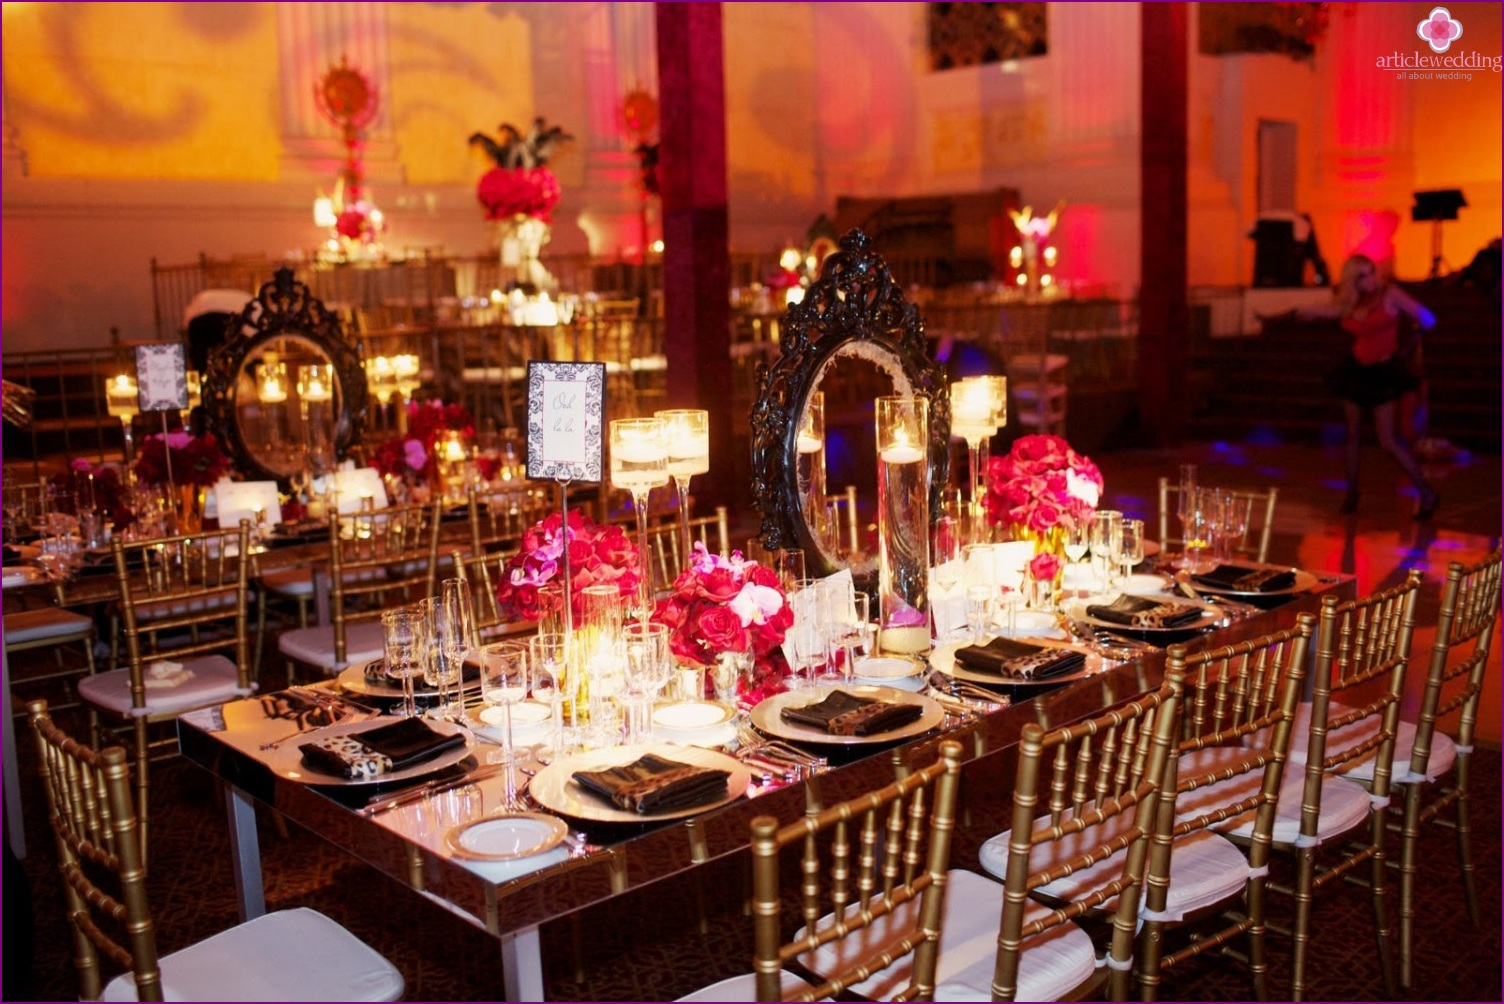 Decor tables in the style of the Moulin Rouge